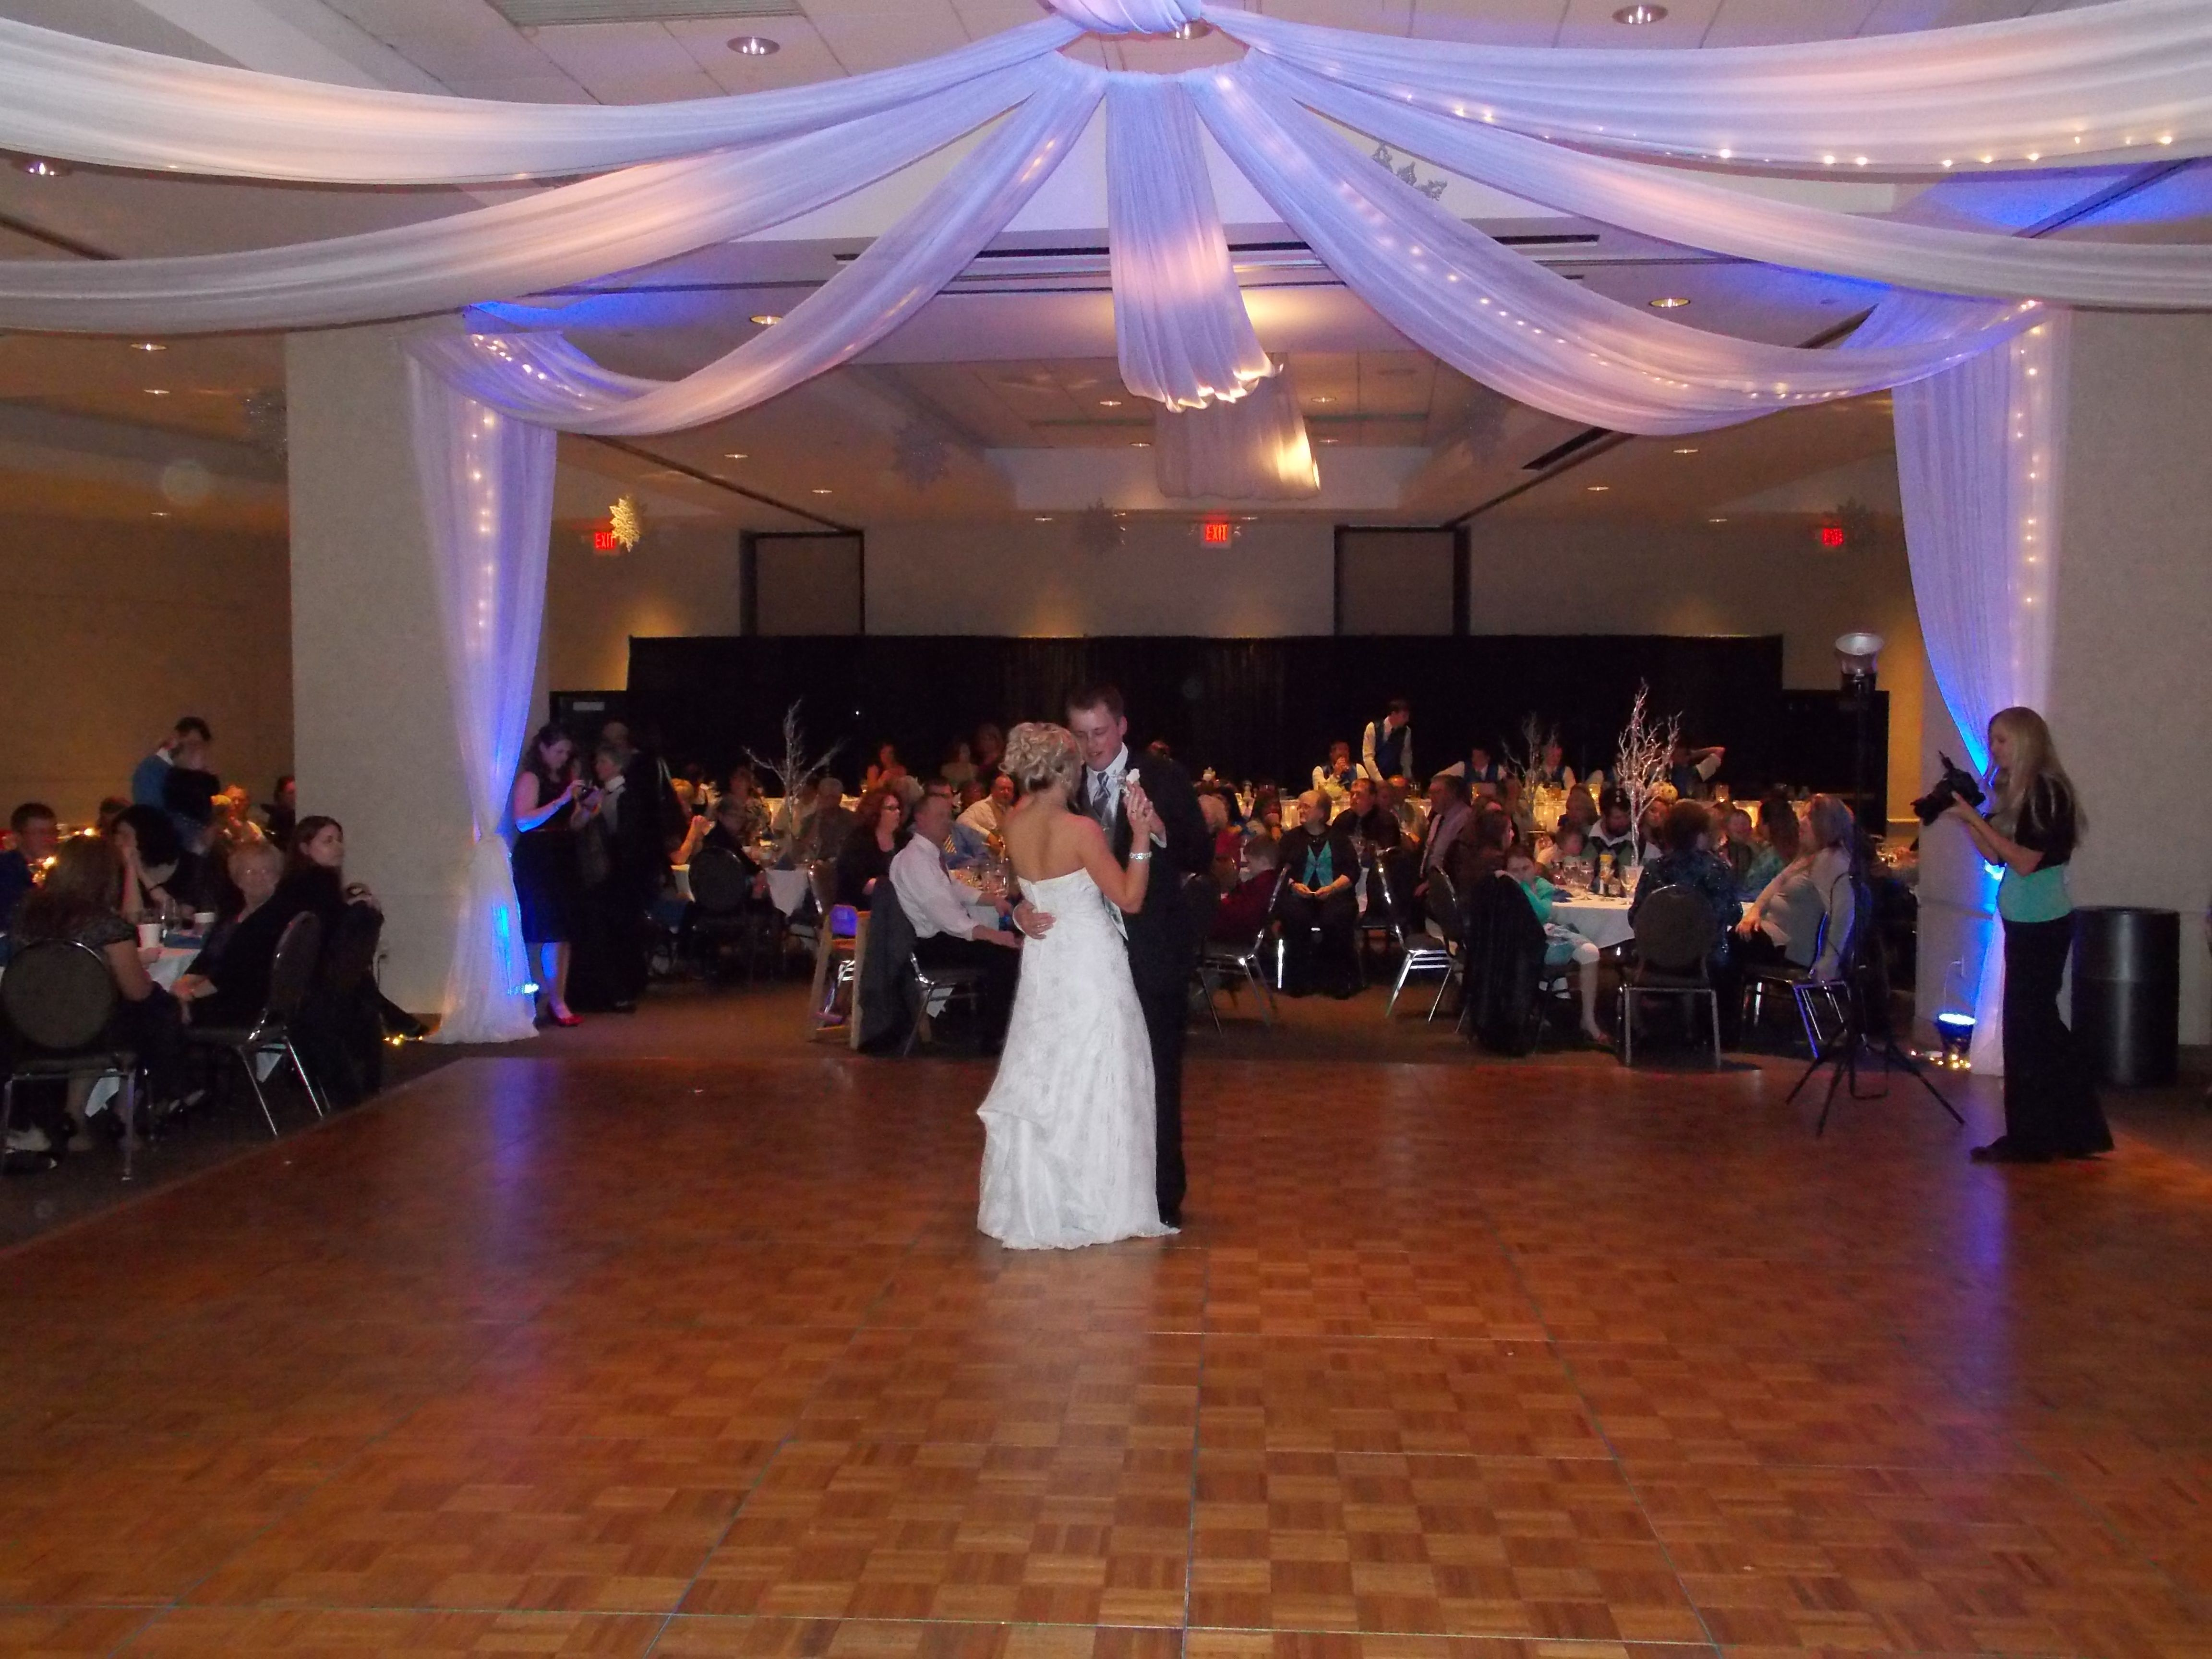 The Bride And Groom S First Dance At The I Wireless Center Moline Illinois Marske Music Productions Kirk Marske Dj E Company Party Banquet Hall Emcee